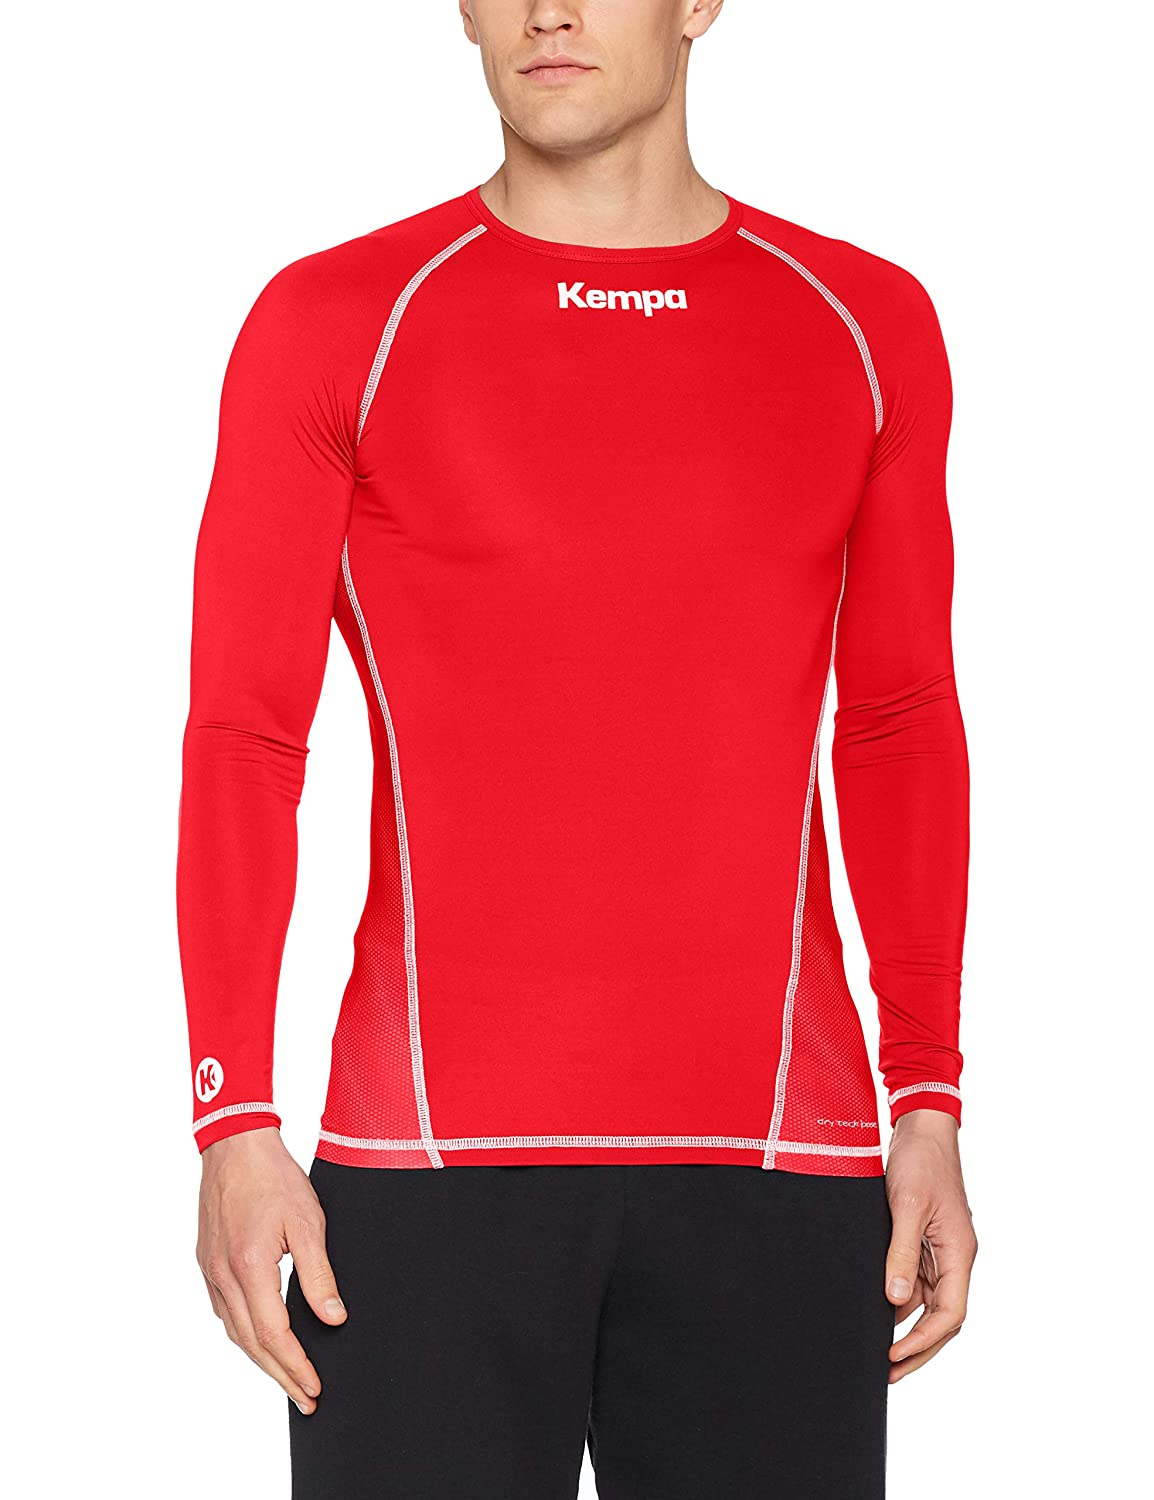 TALLA 3XL. Kempa Adultos Teamsport Attitude Manga Larga